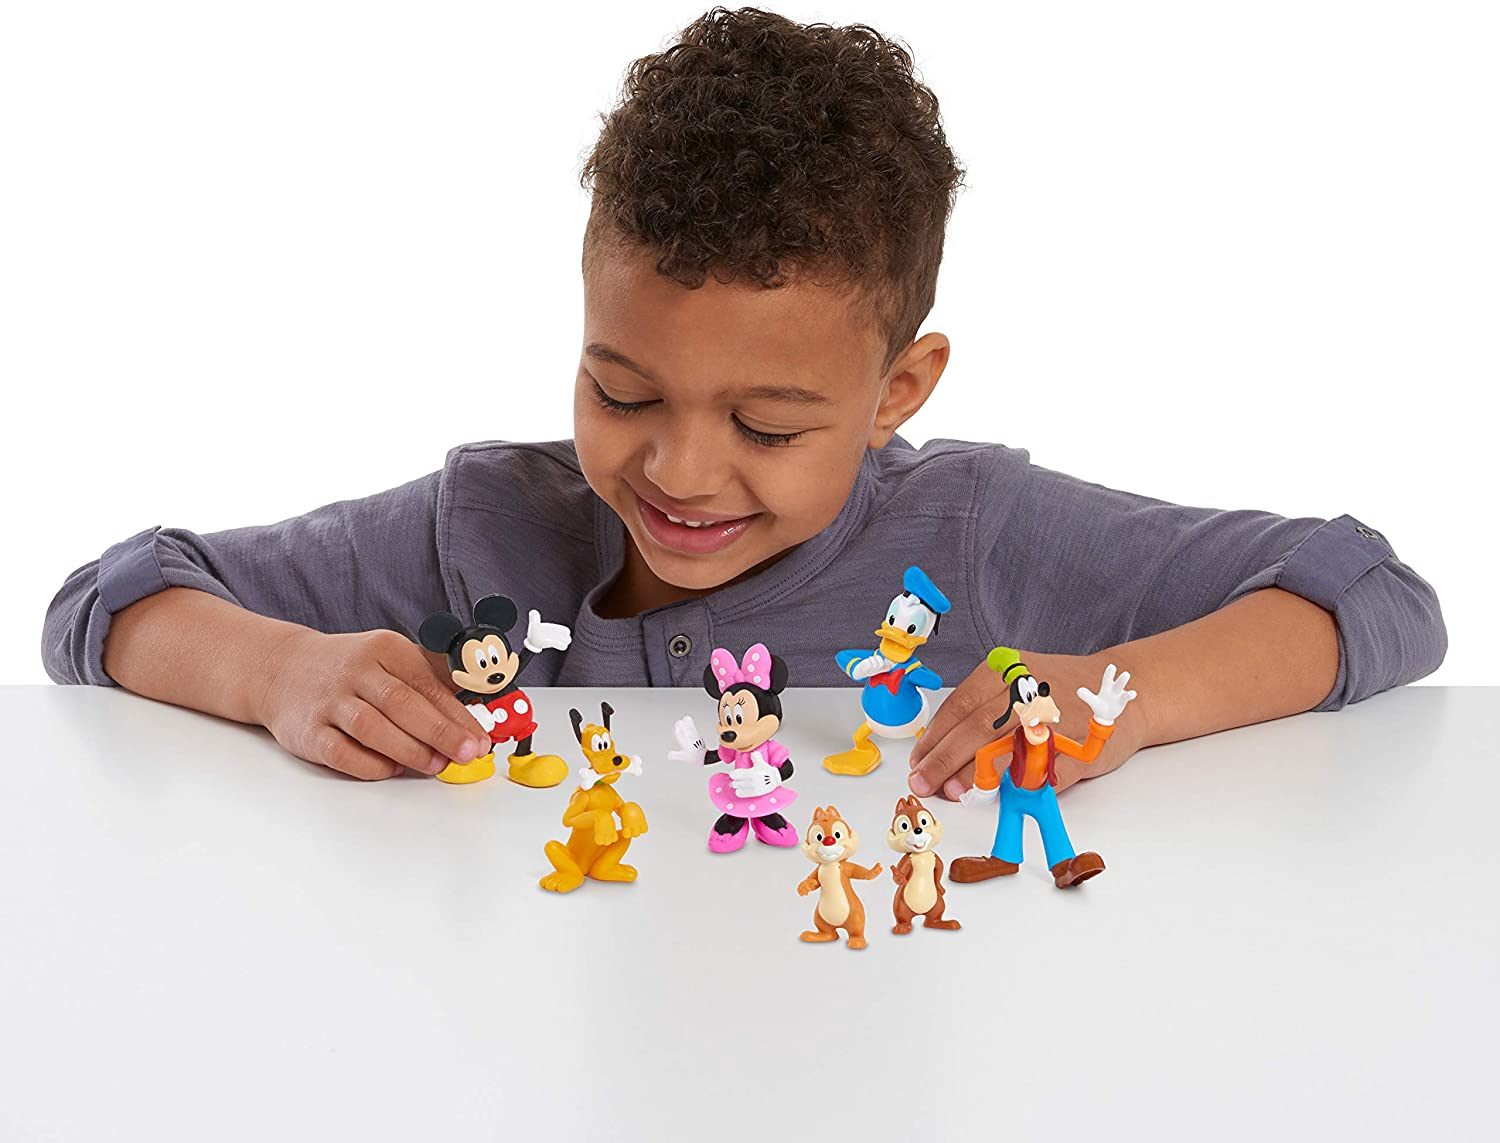 Mickey Mouse 7-Piece Figure Set, Toys for 3 Year Old Boys, Amazon Multi-color